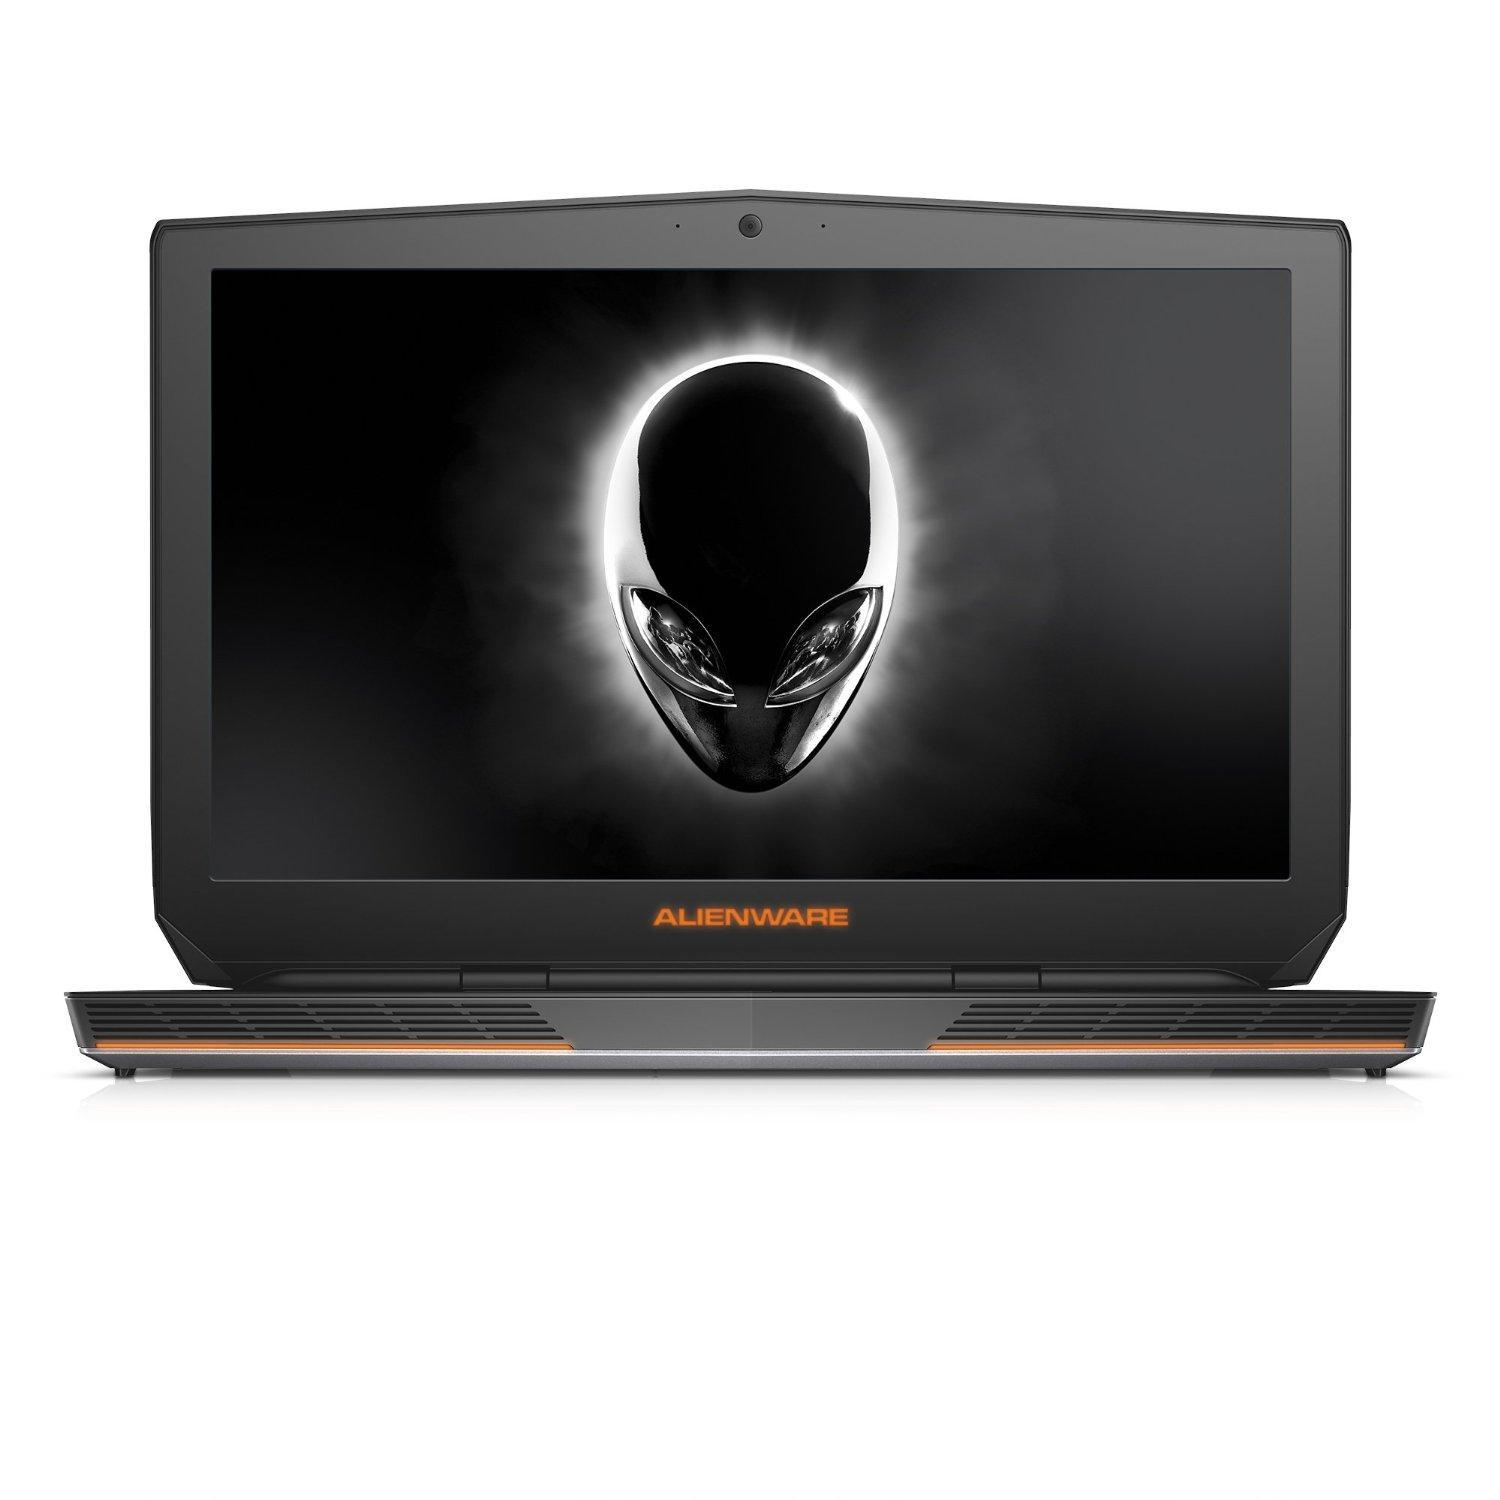 Alienware AW17R3-8342SLV 17.3 Inch UHD Laptop